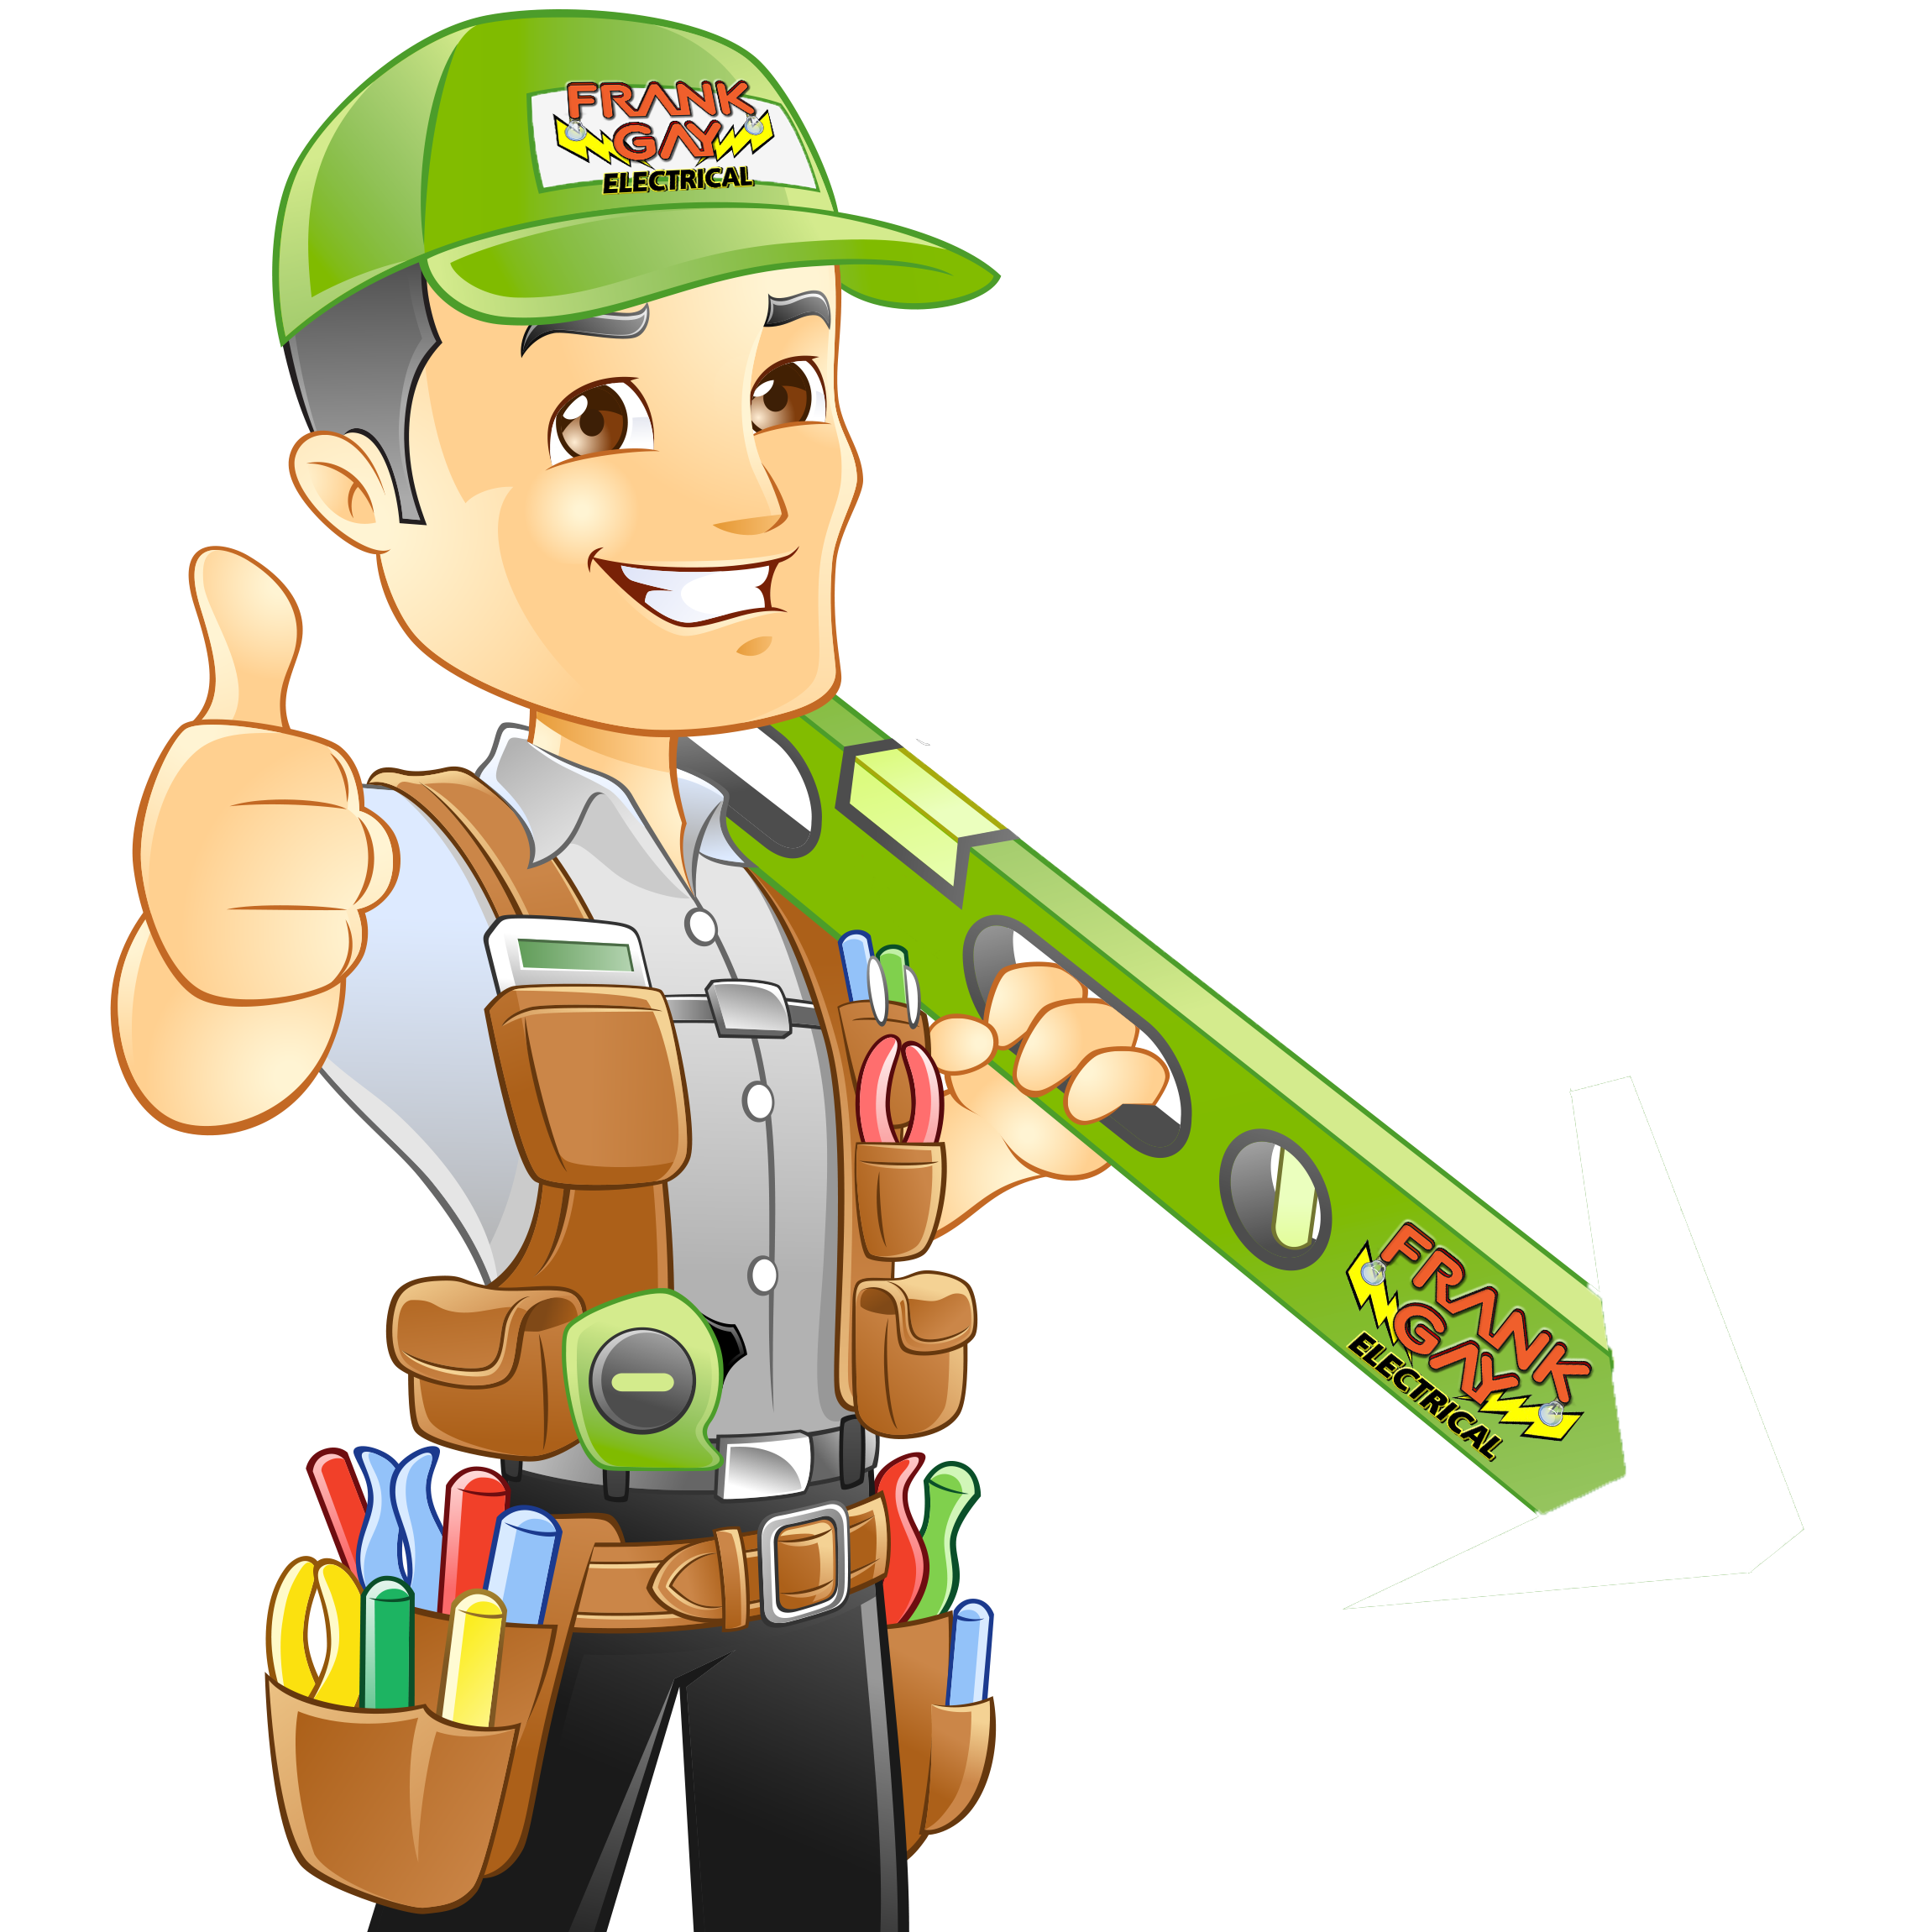 Electrical clipart electrical technician #5